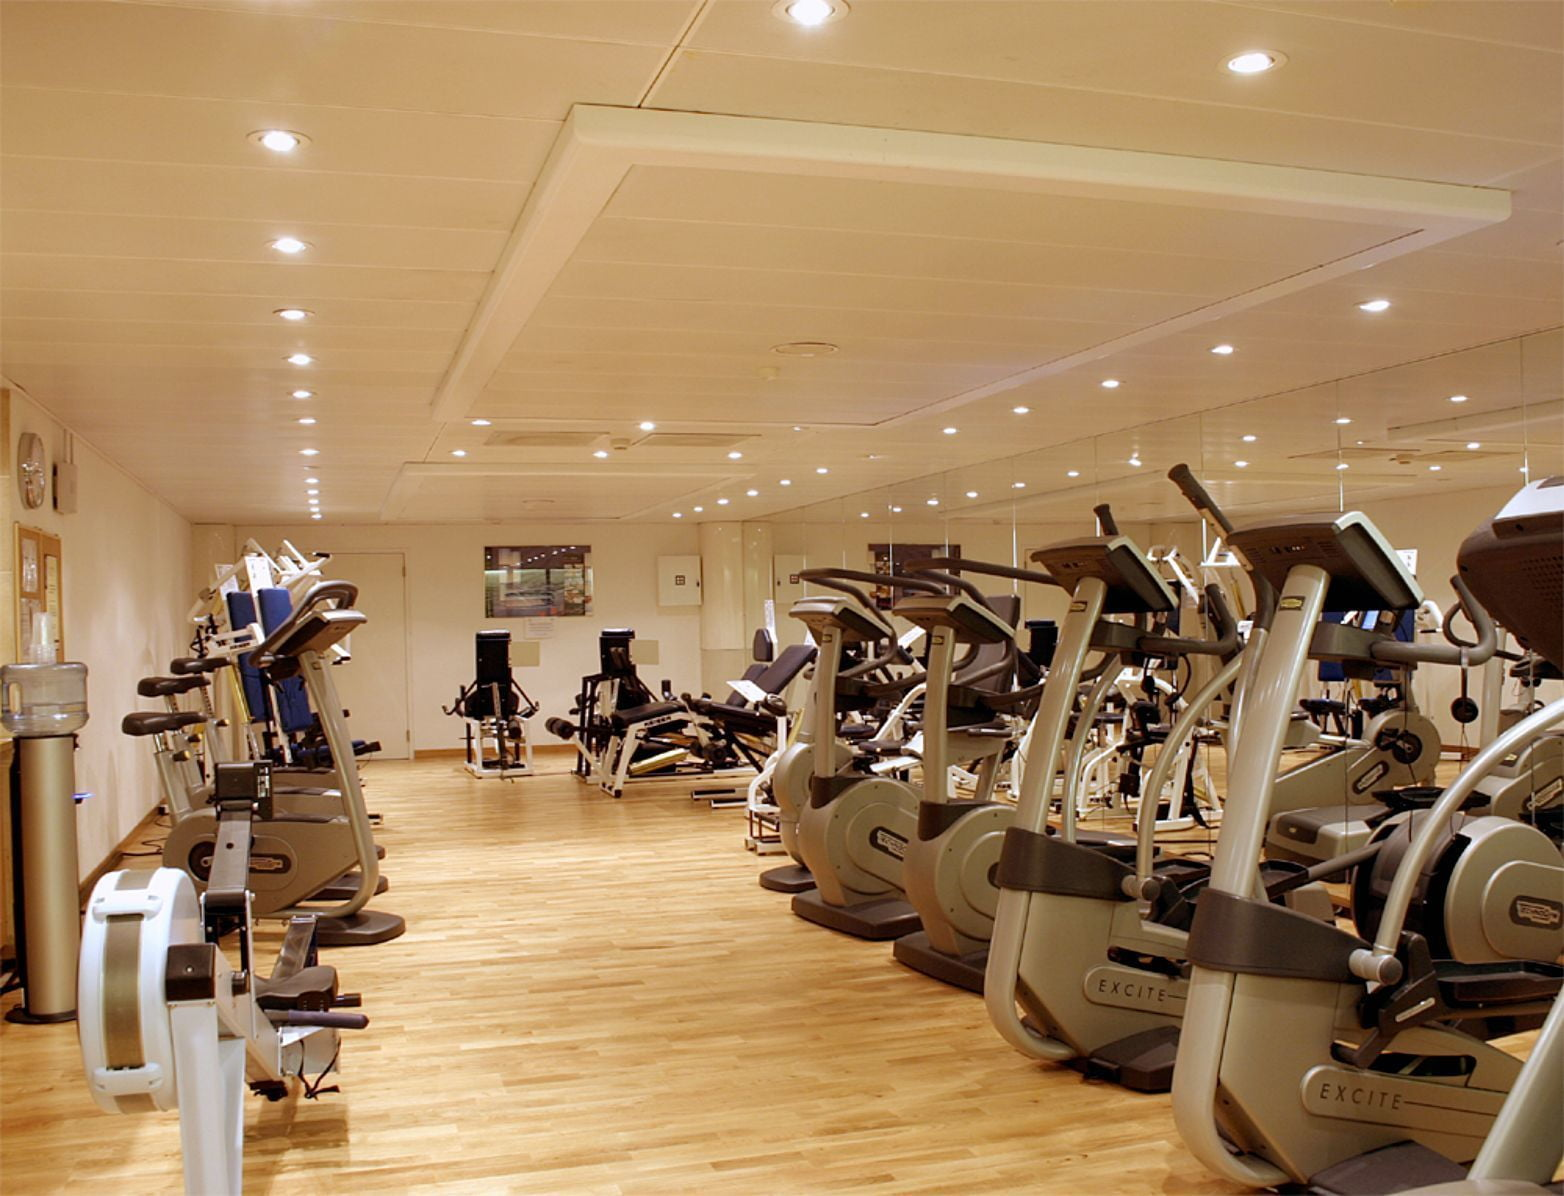 Wellfit, Crystal Hotel